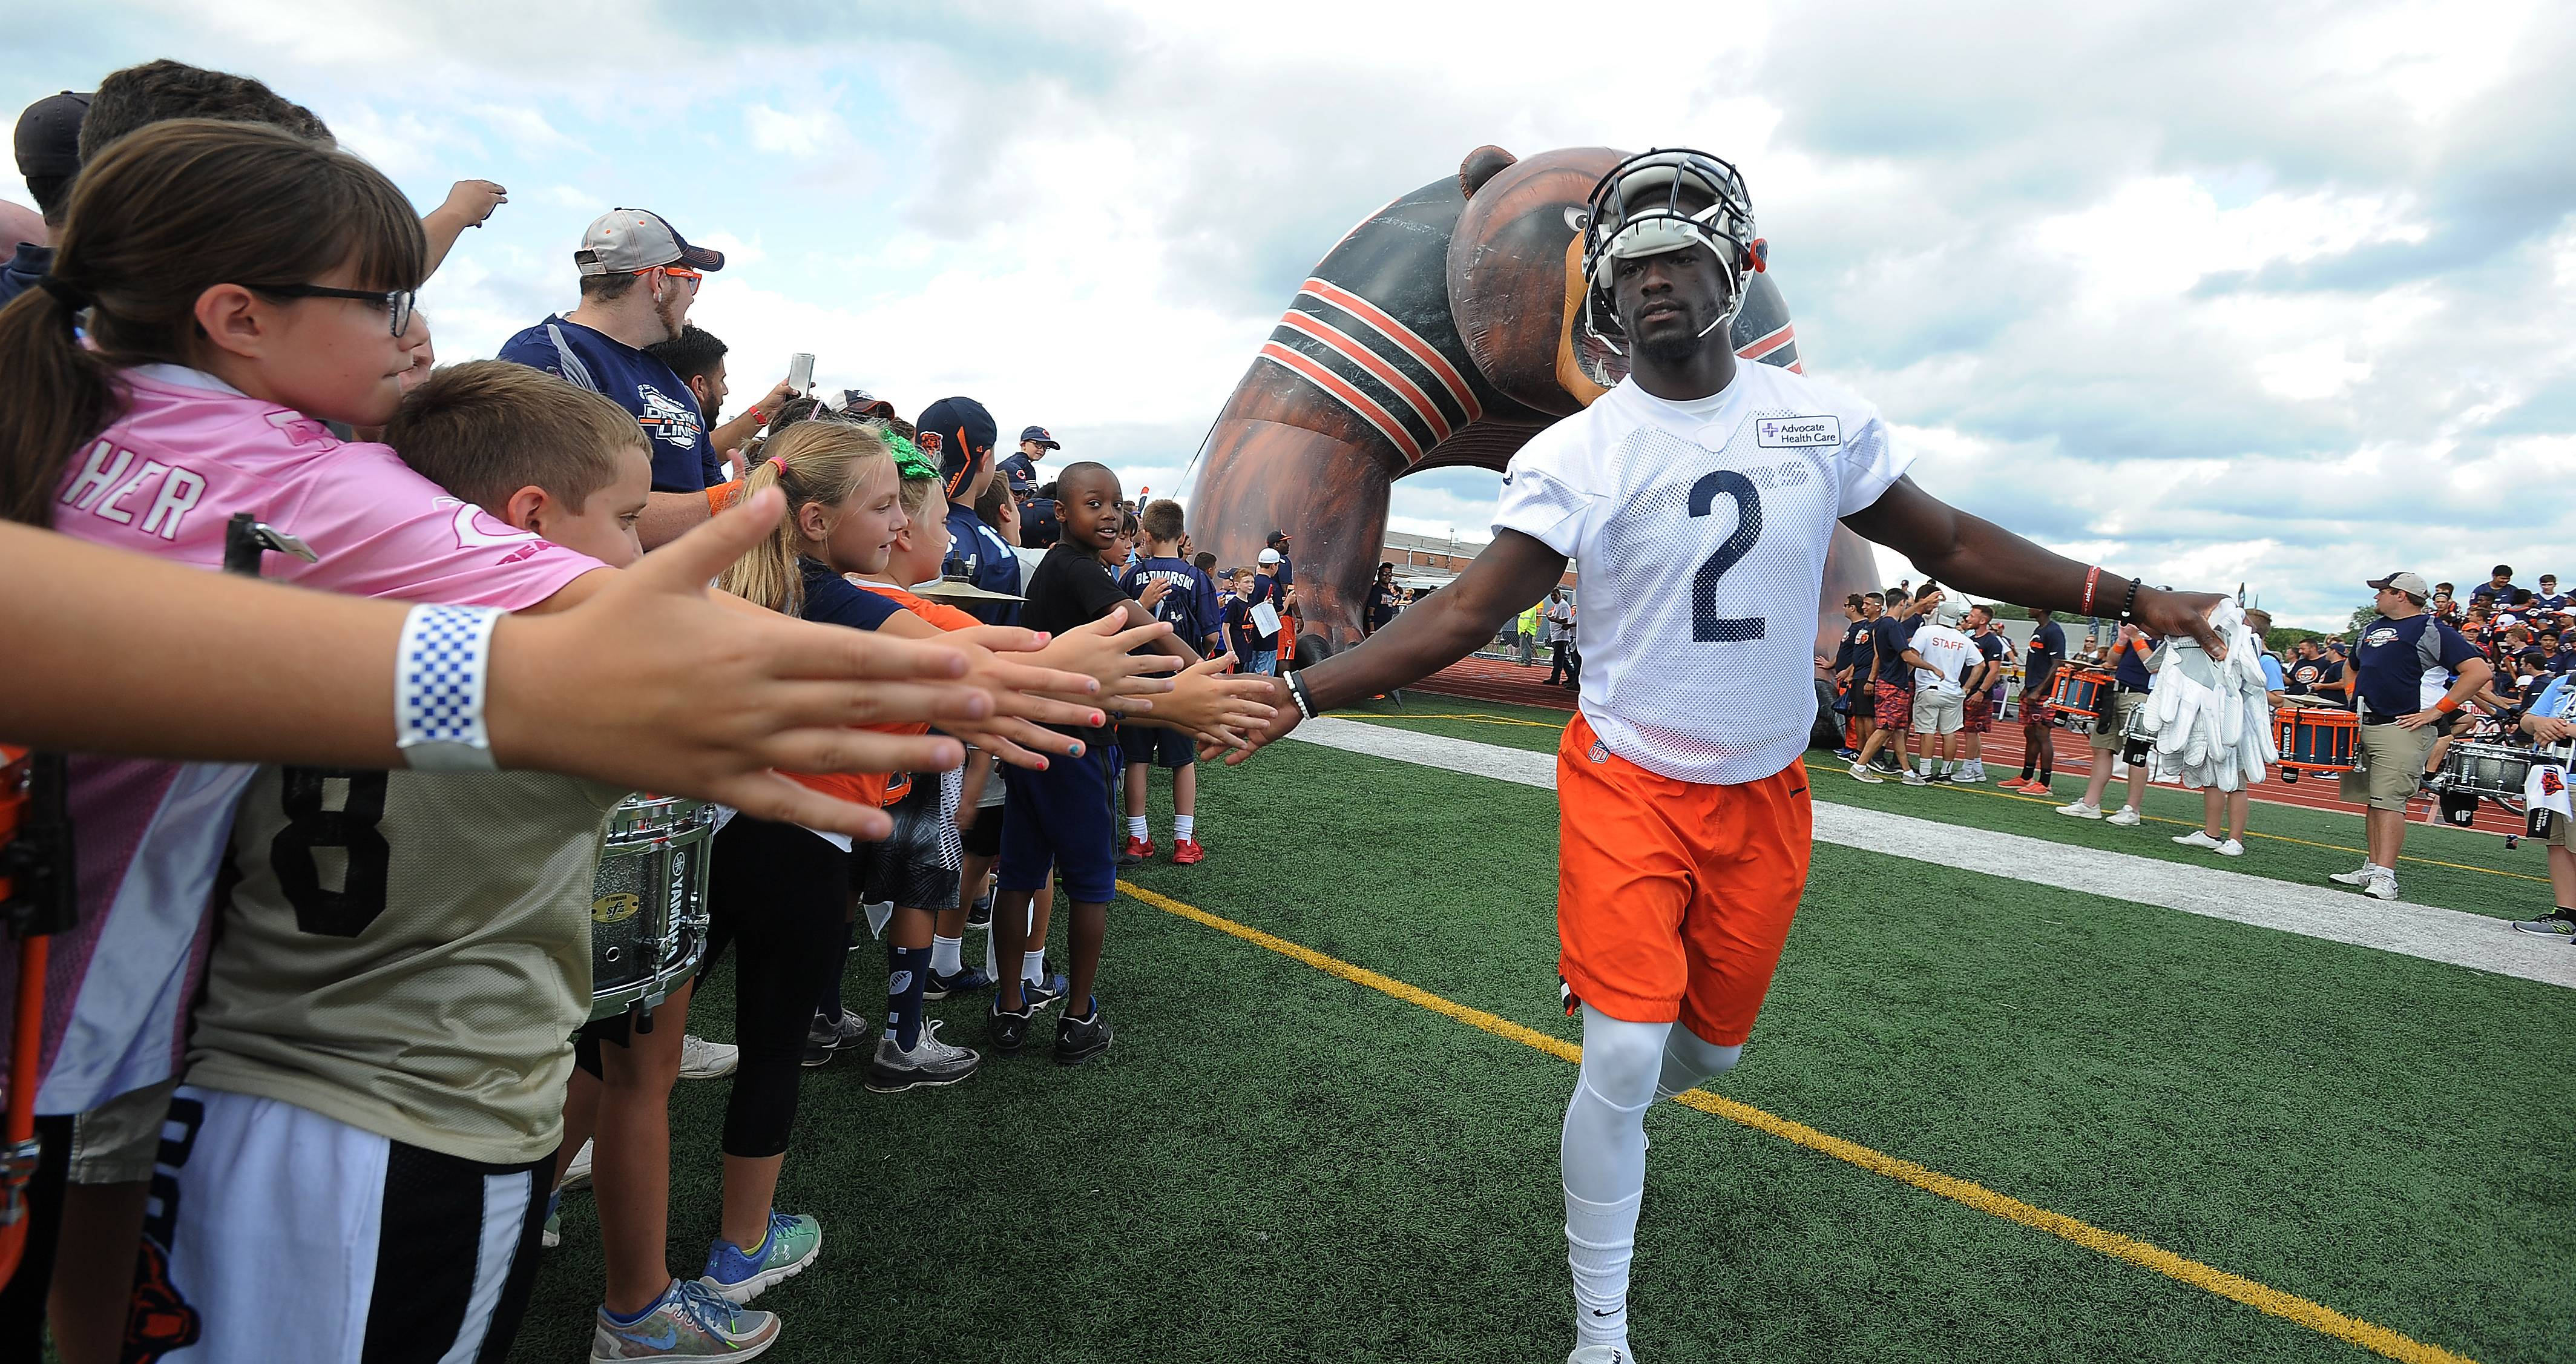 Bears take over Prospect High stadium, and local fans love it